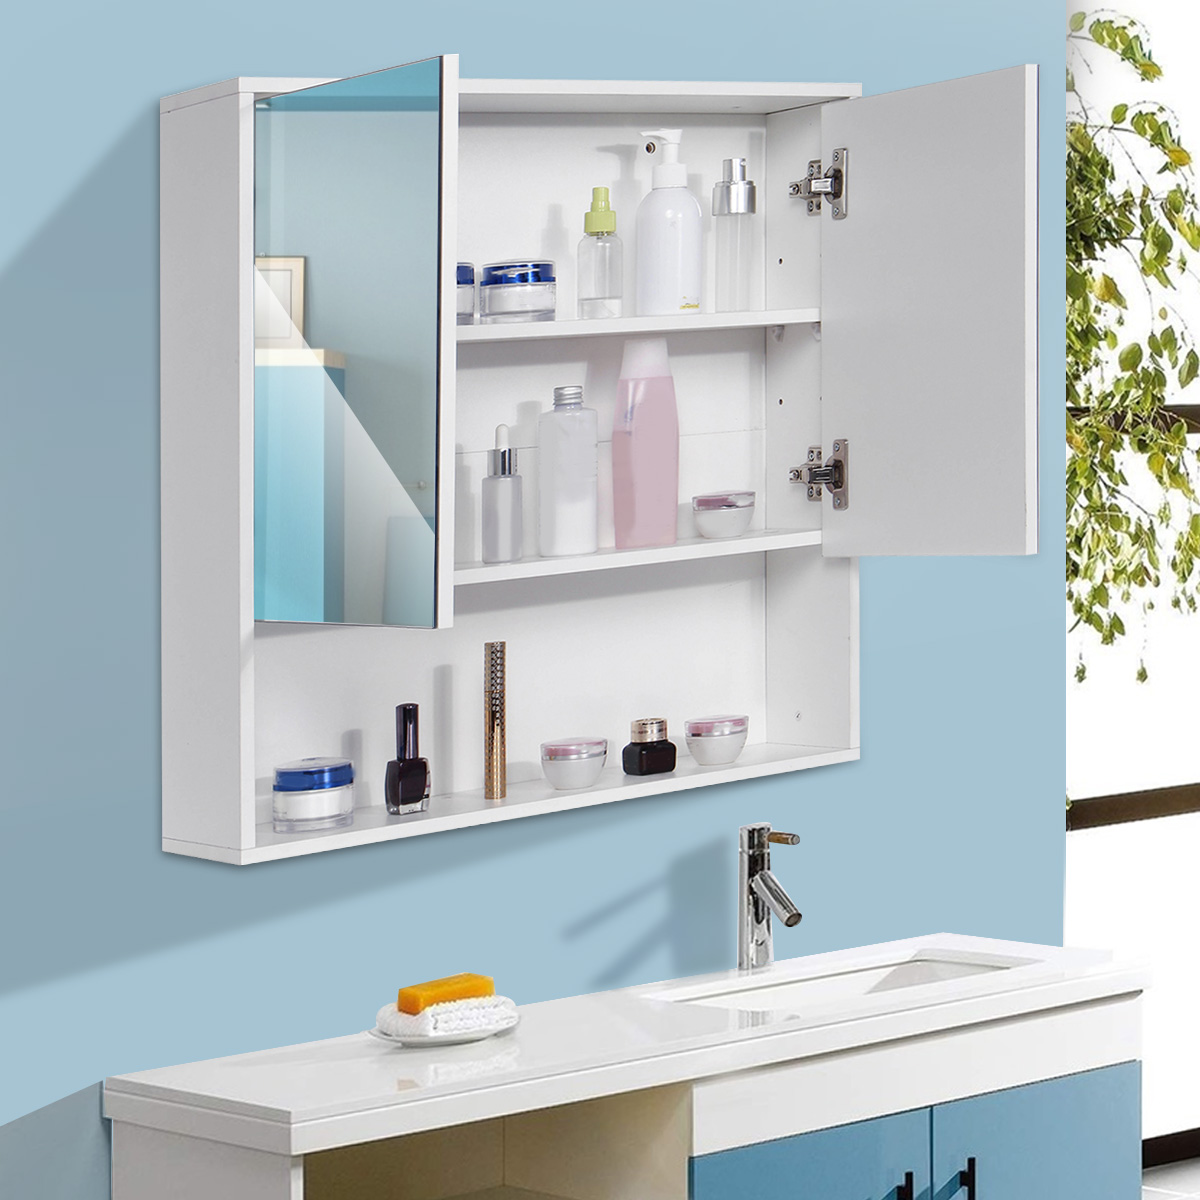 60x60cm Bathroom Cabinet Wall Mounted